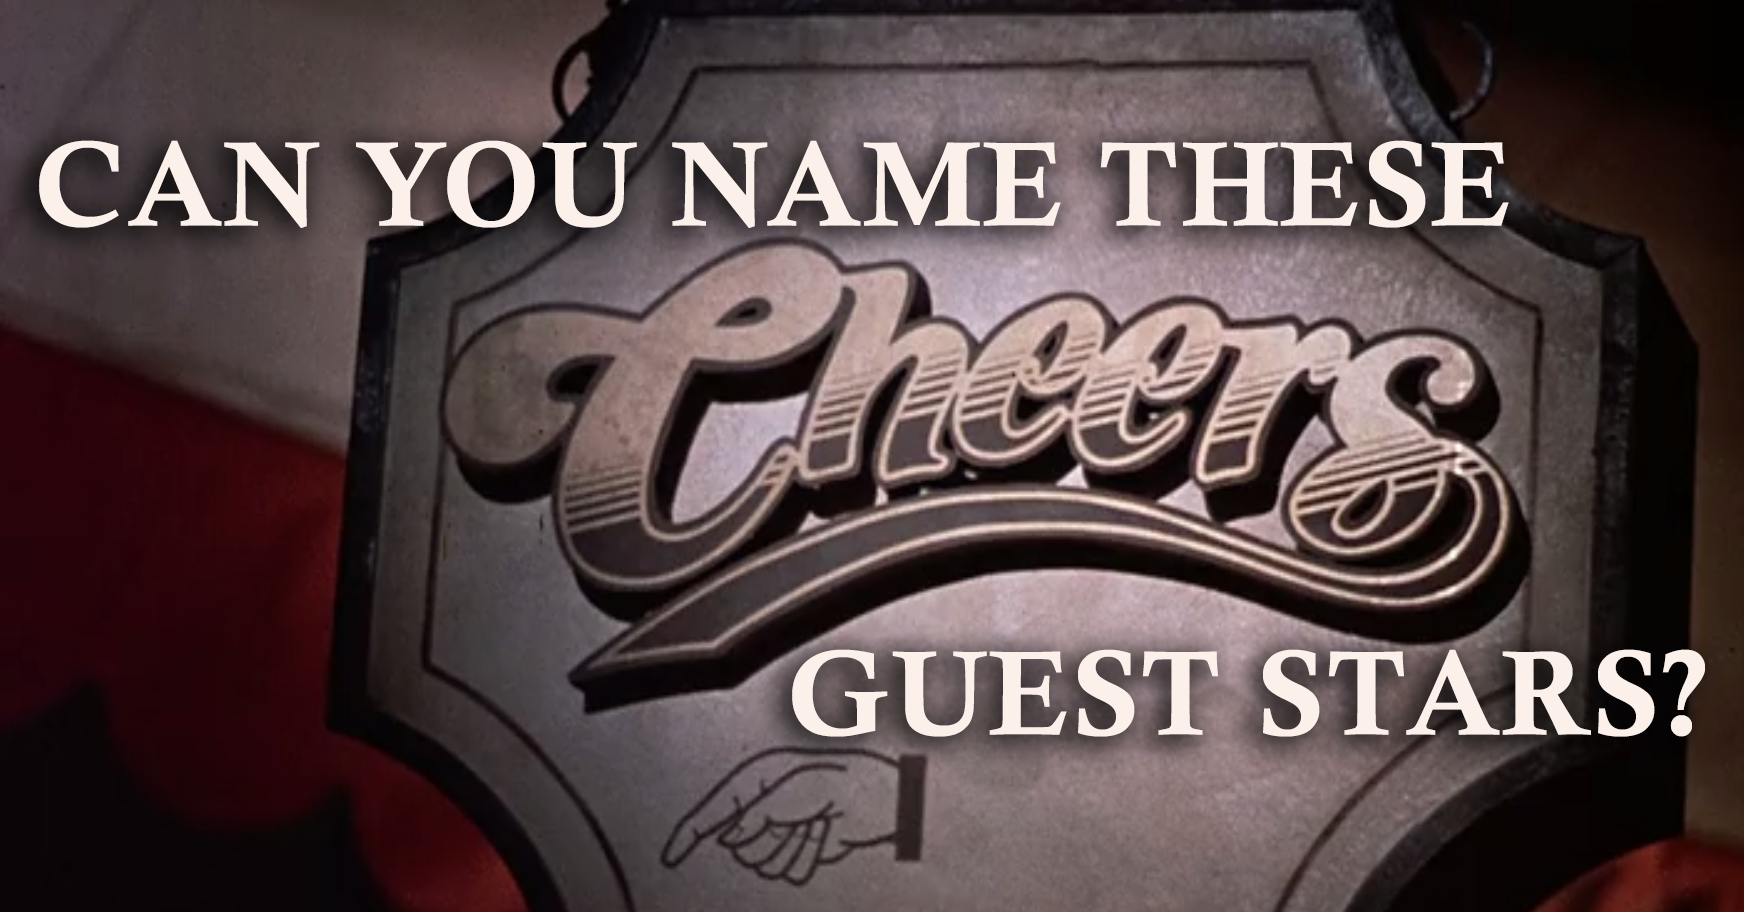 Can you name these guest stars on 'Cheers'?